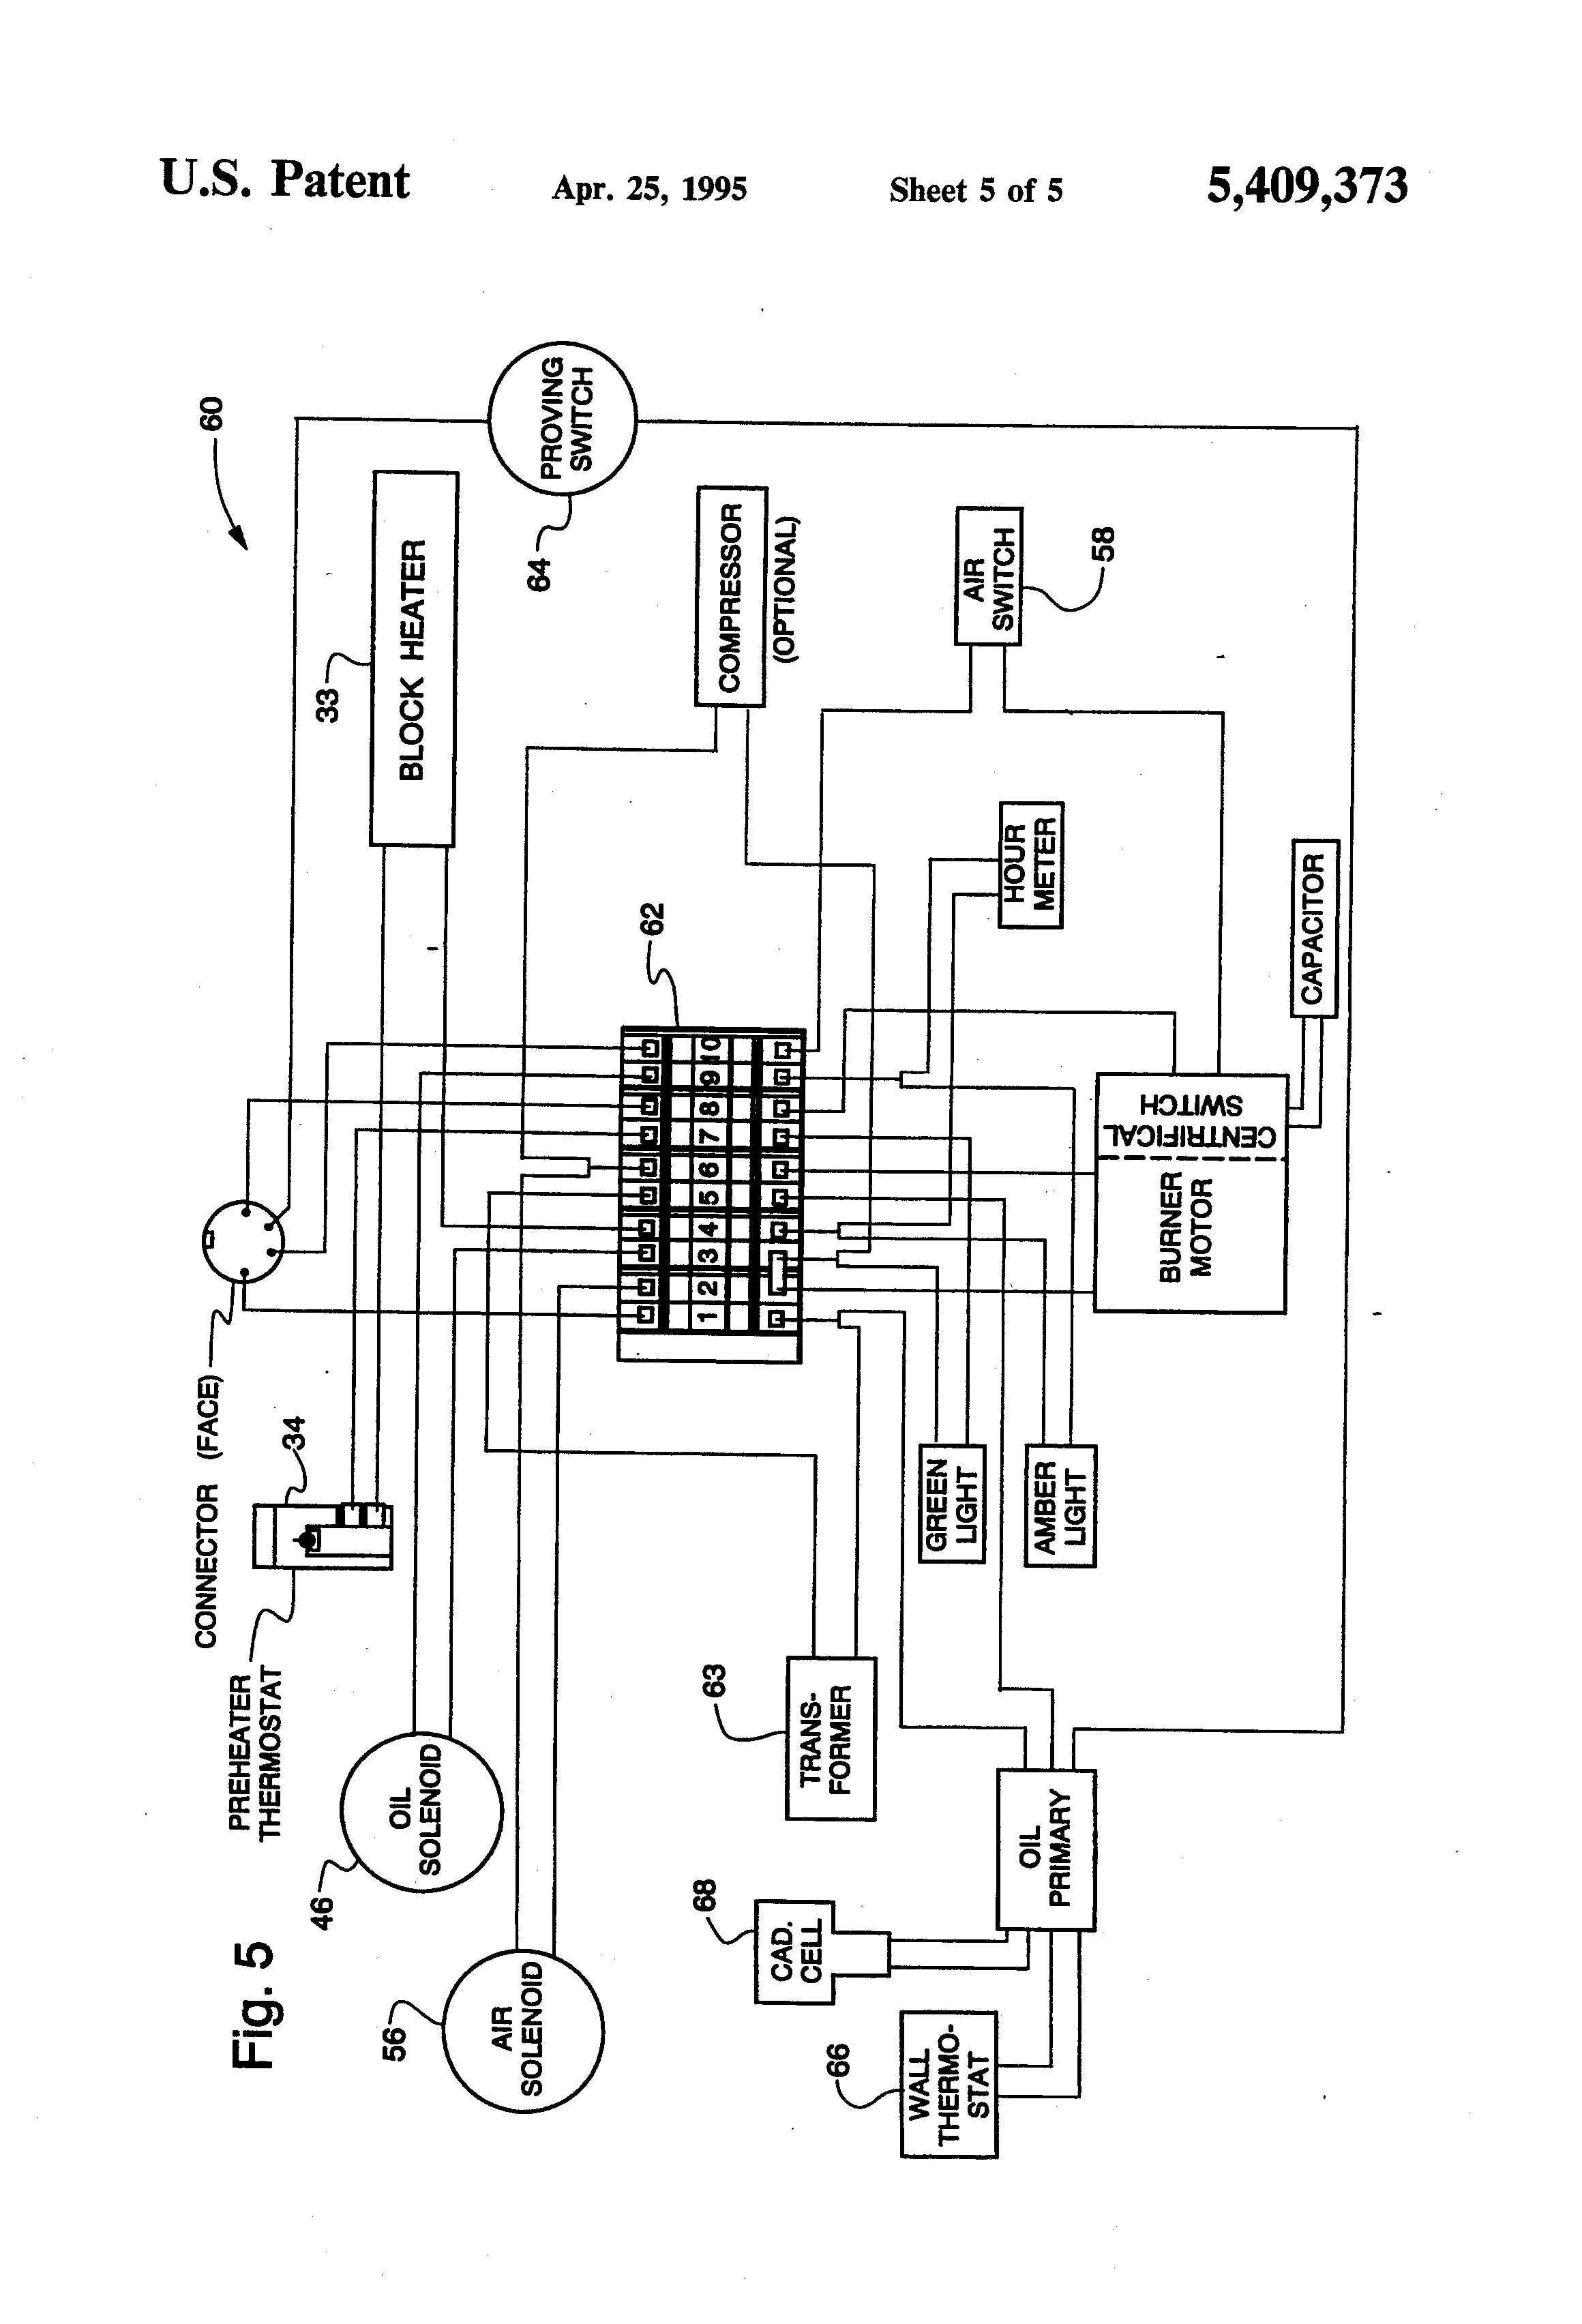 Page 2 besides Wiring Diagram For Bryant Humidifier also Crystal Growth Tube Furnace in addition Gemini 53a moreover HVAC Clearance Distances. on furnace limit control